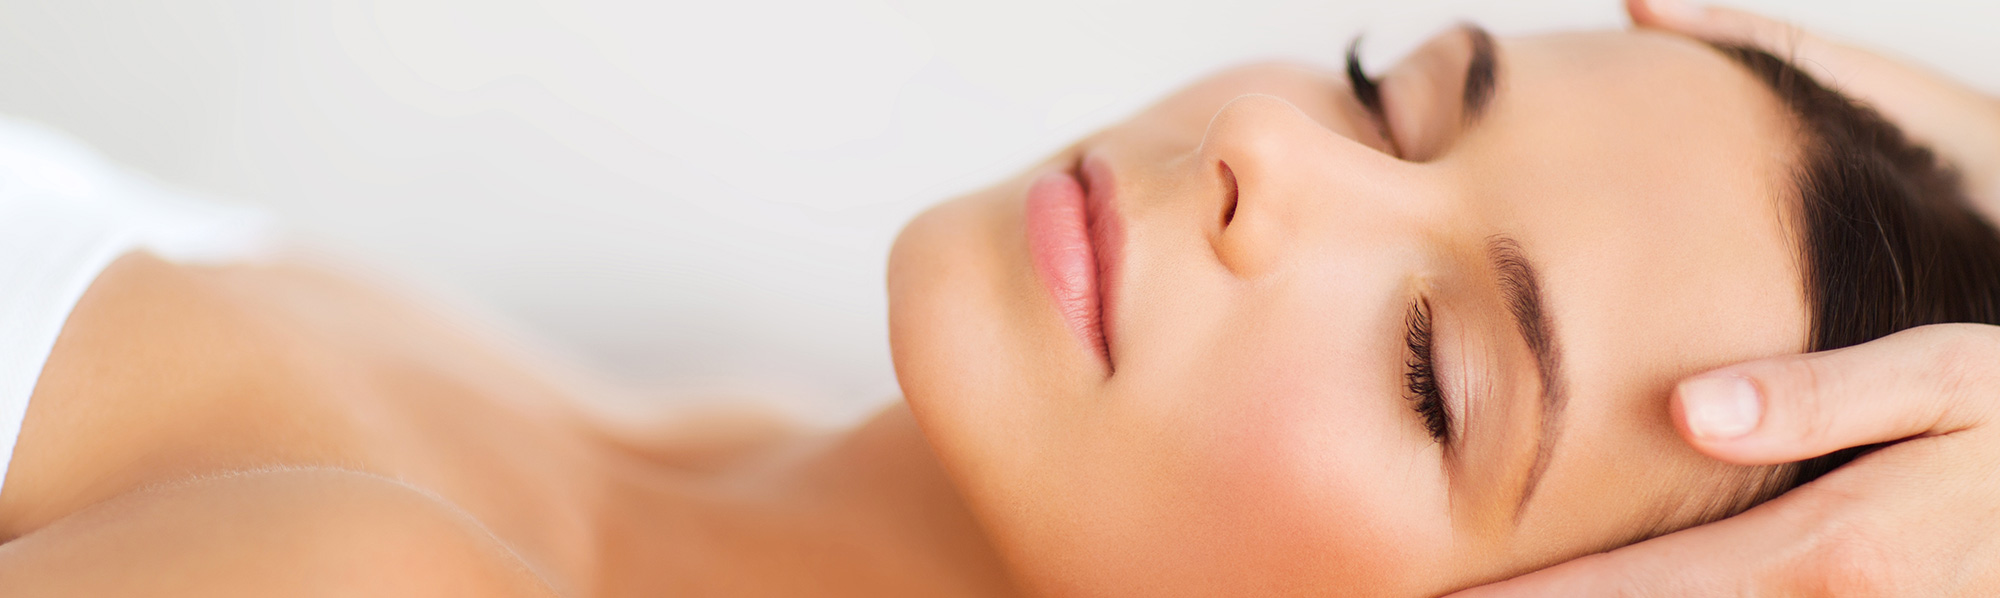 Facial Treatment - dermaplaning, microdermabrasion, spa treatment in Halifax NS